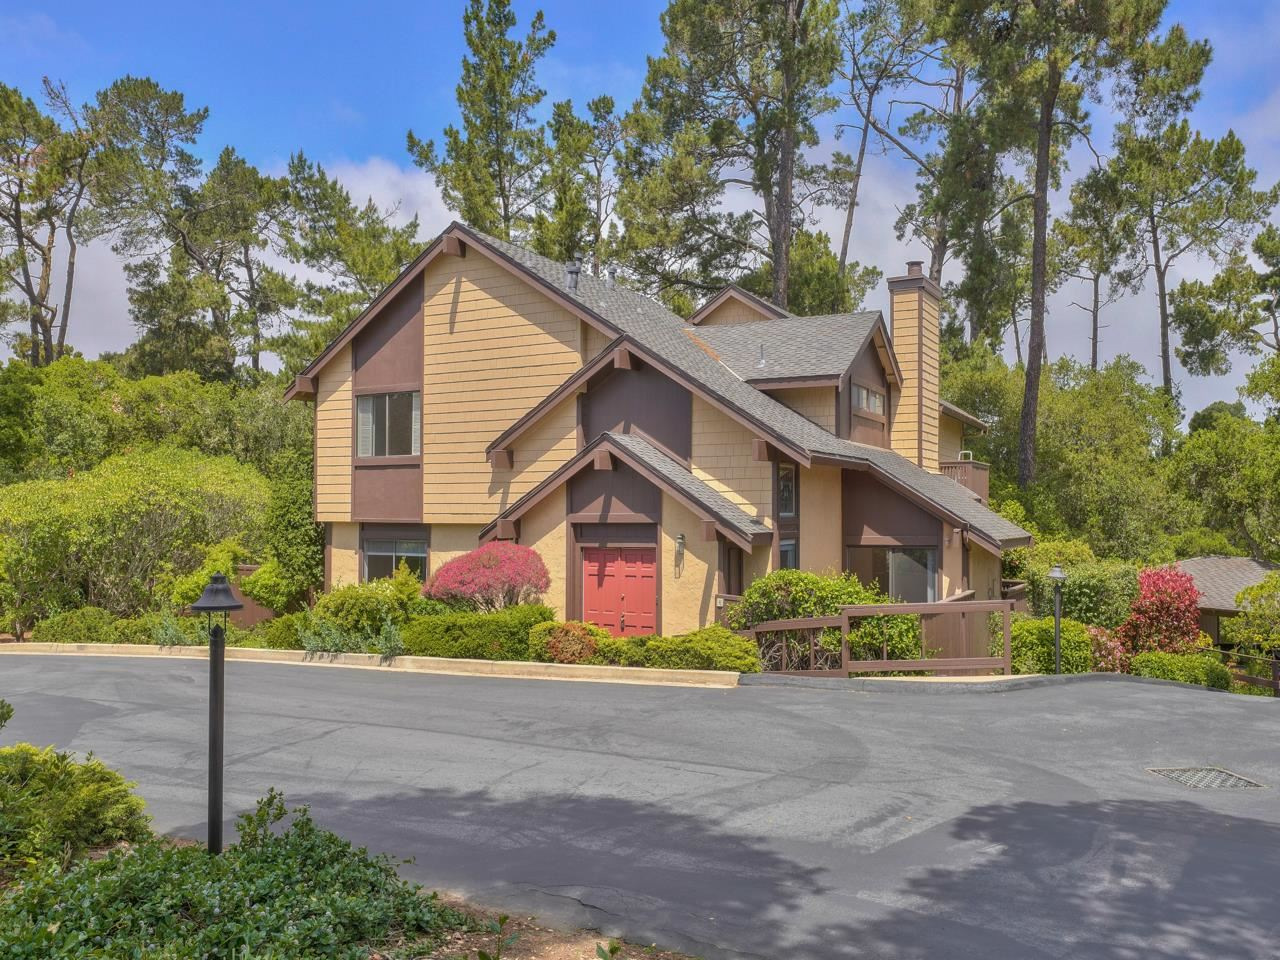 Photo for 1360 Josselyn Canyon Road #1, MONTEREY, CA 93940 (MLS # ML81840587)